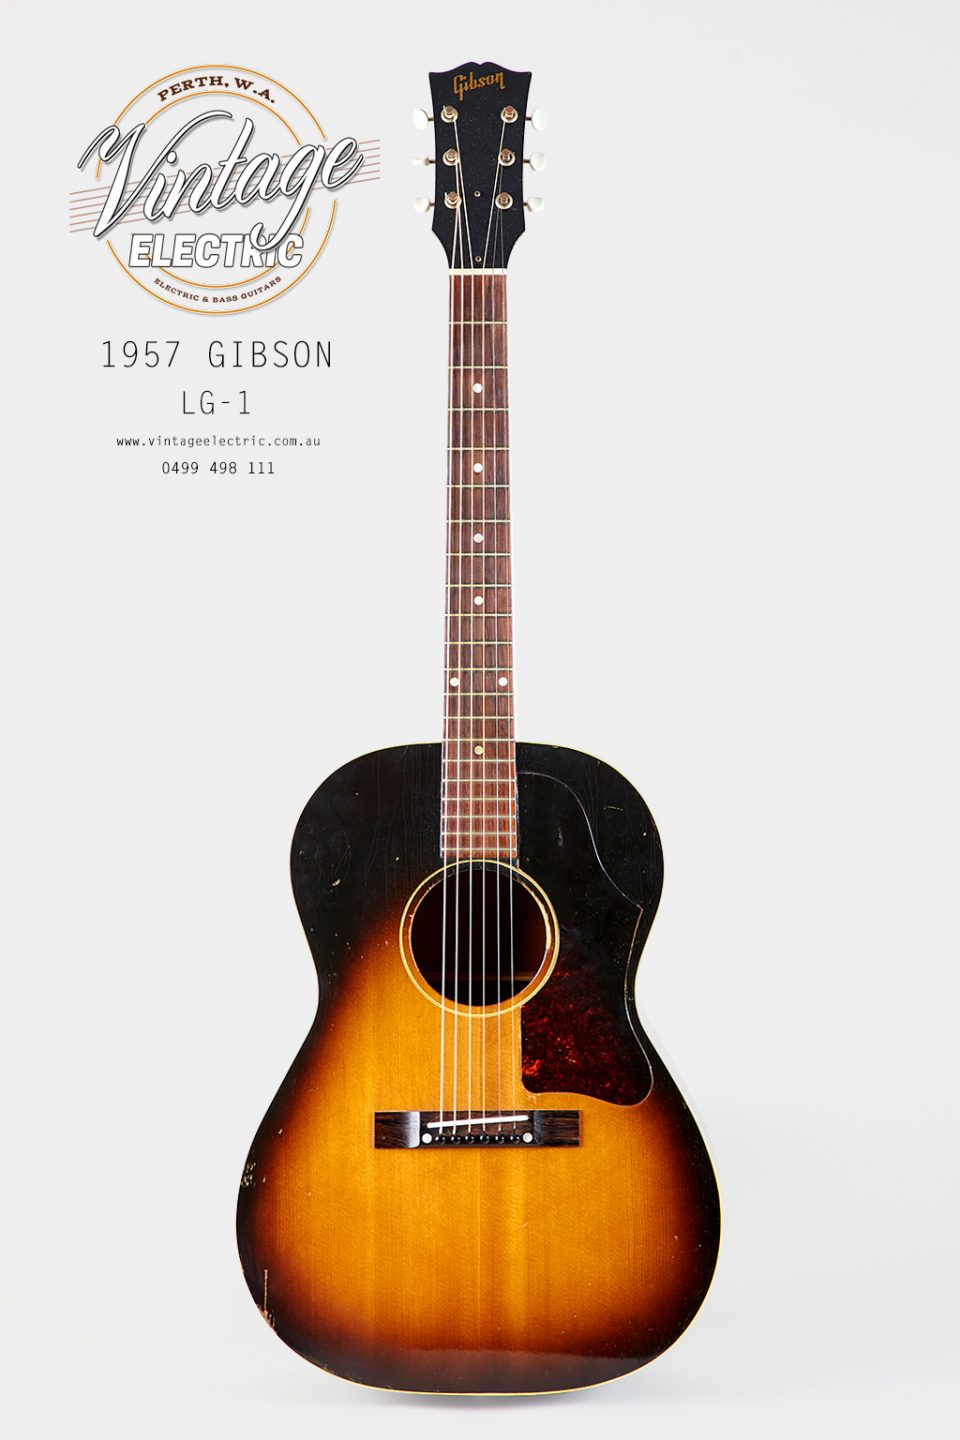 1957 Gibson LG1 Vintage Acoustic Guitar